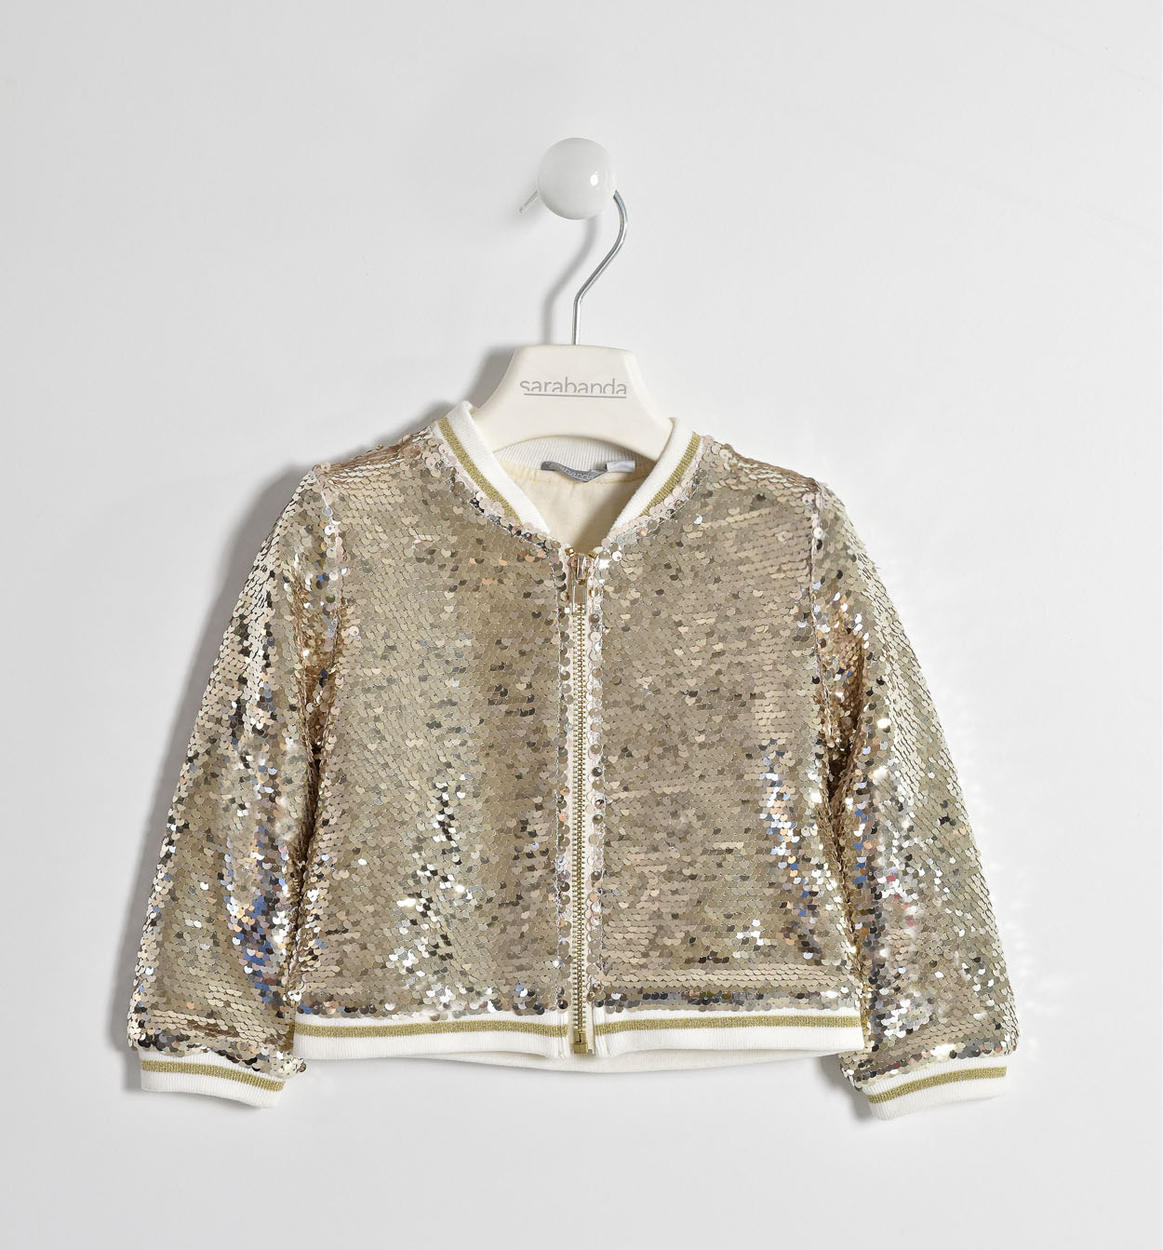 613d851ce Sequin bomber jacket for baby girls from 6 months to 7 years Sarabanda  ORO-1154